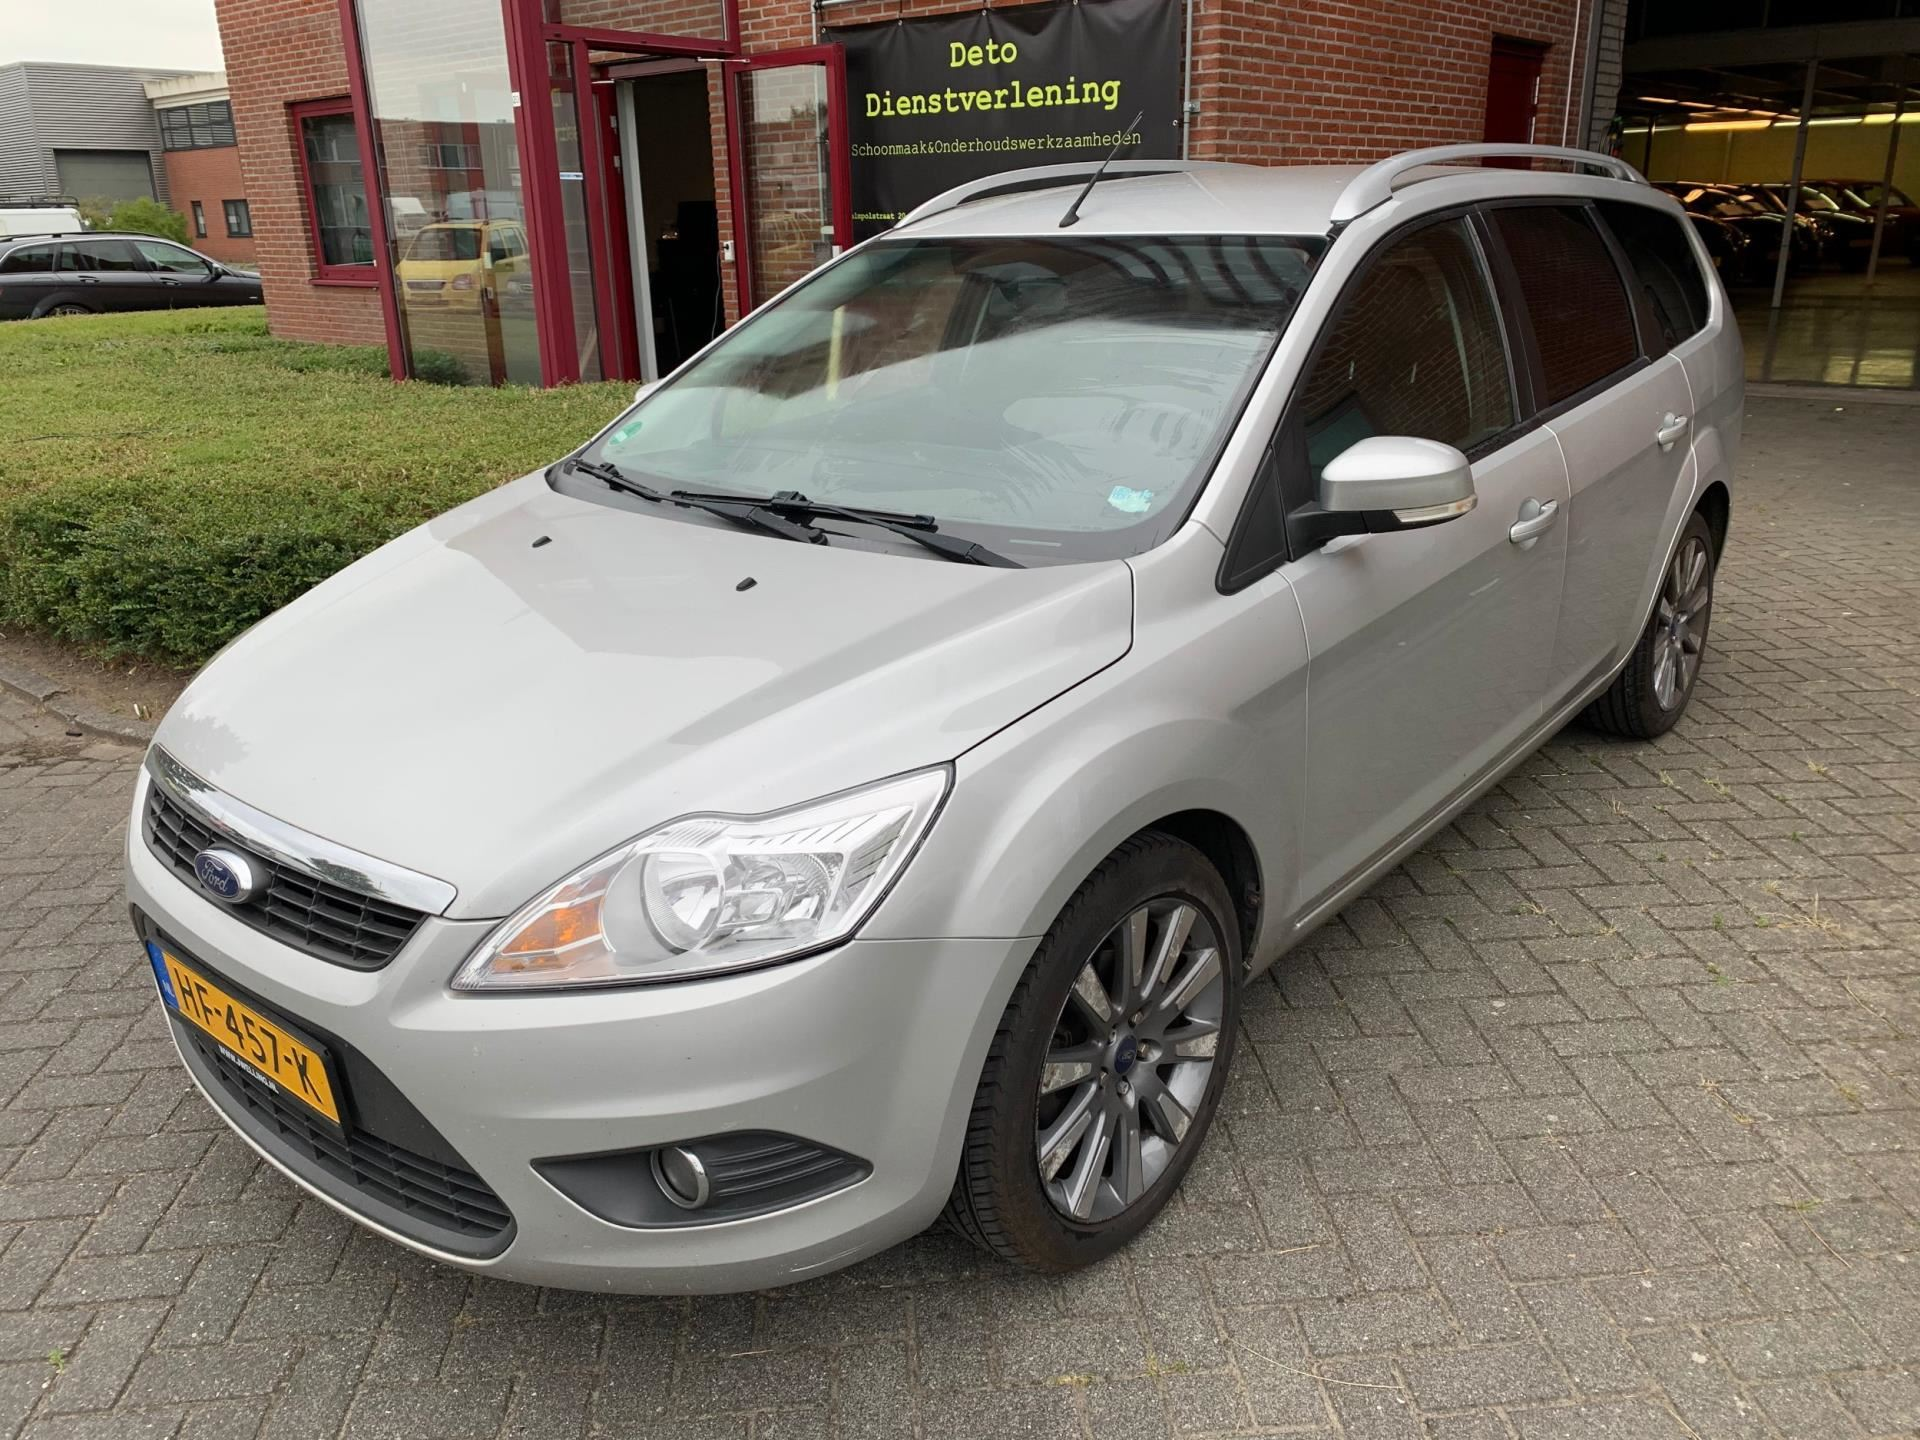 Ford Focus Wagon occasion - Handelsonderneming Deto